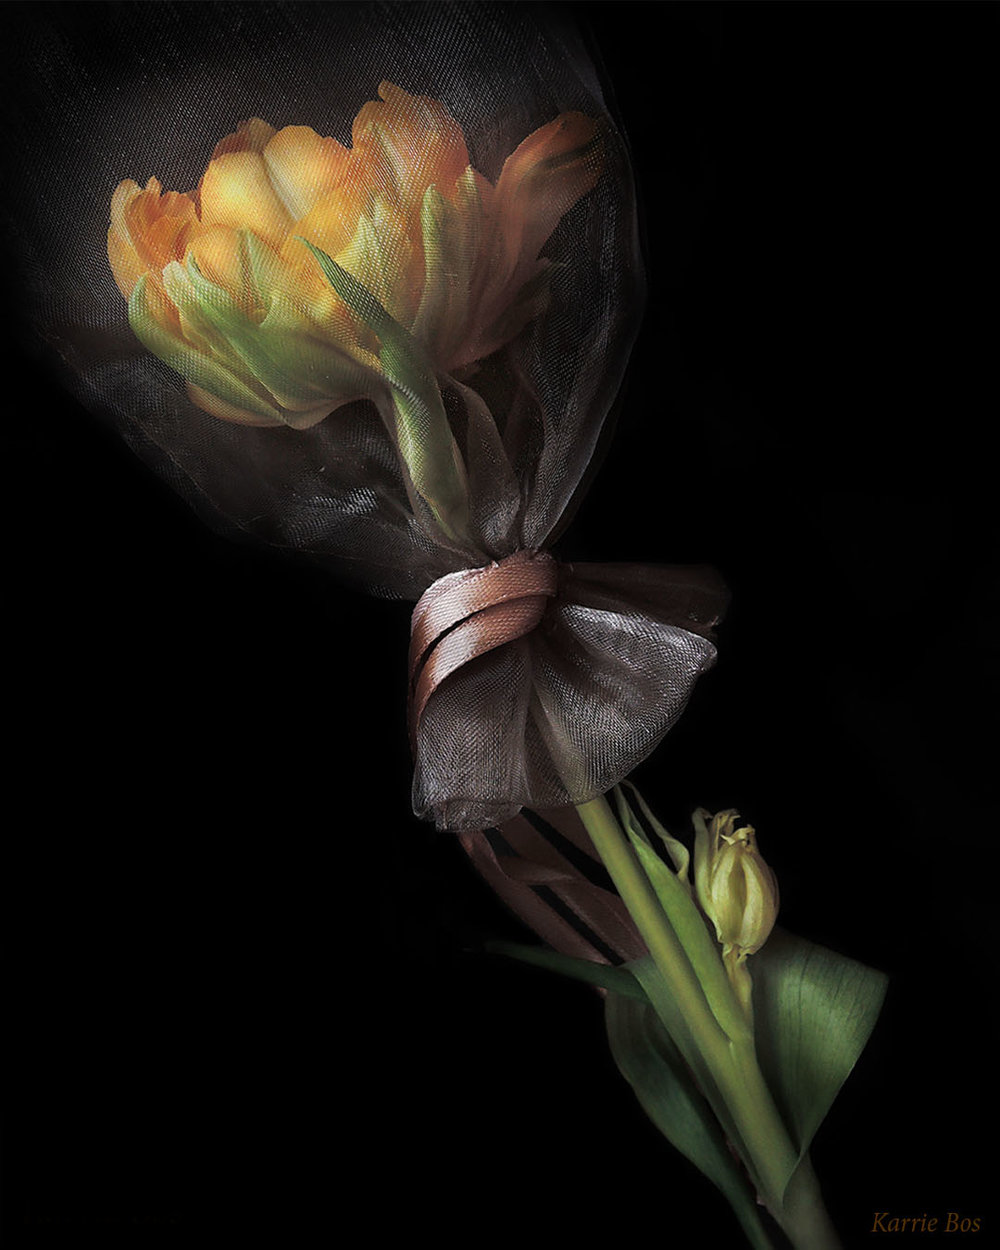 Flower in a Bag 1080 x 1350.jpg